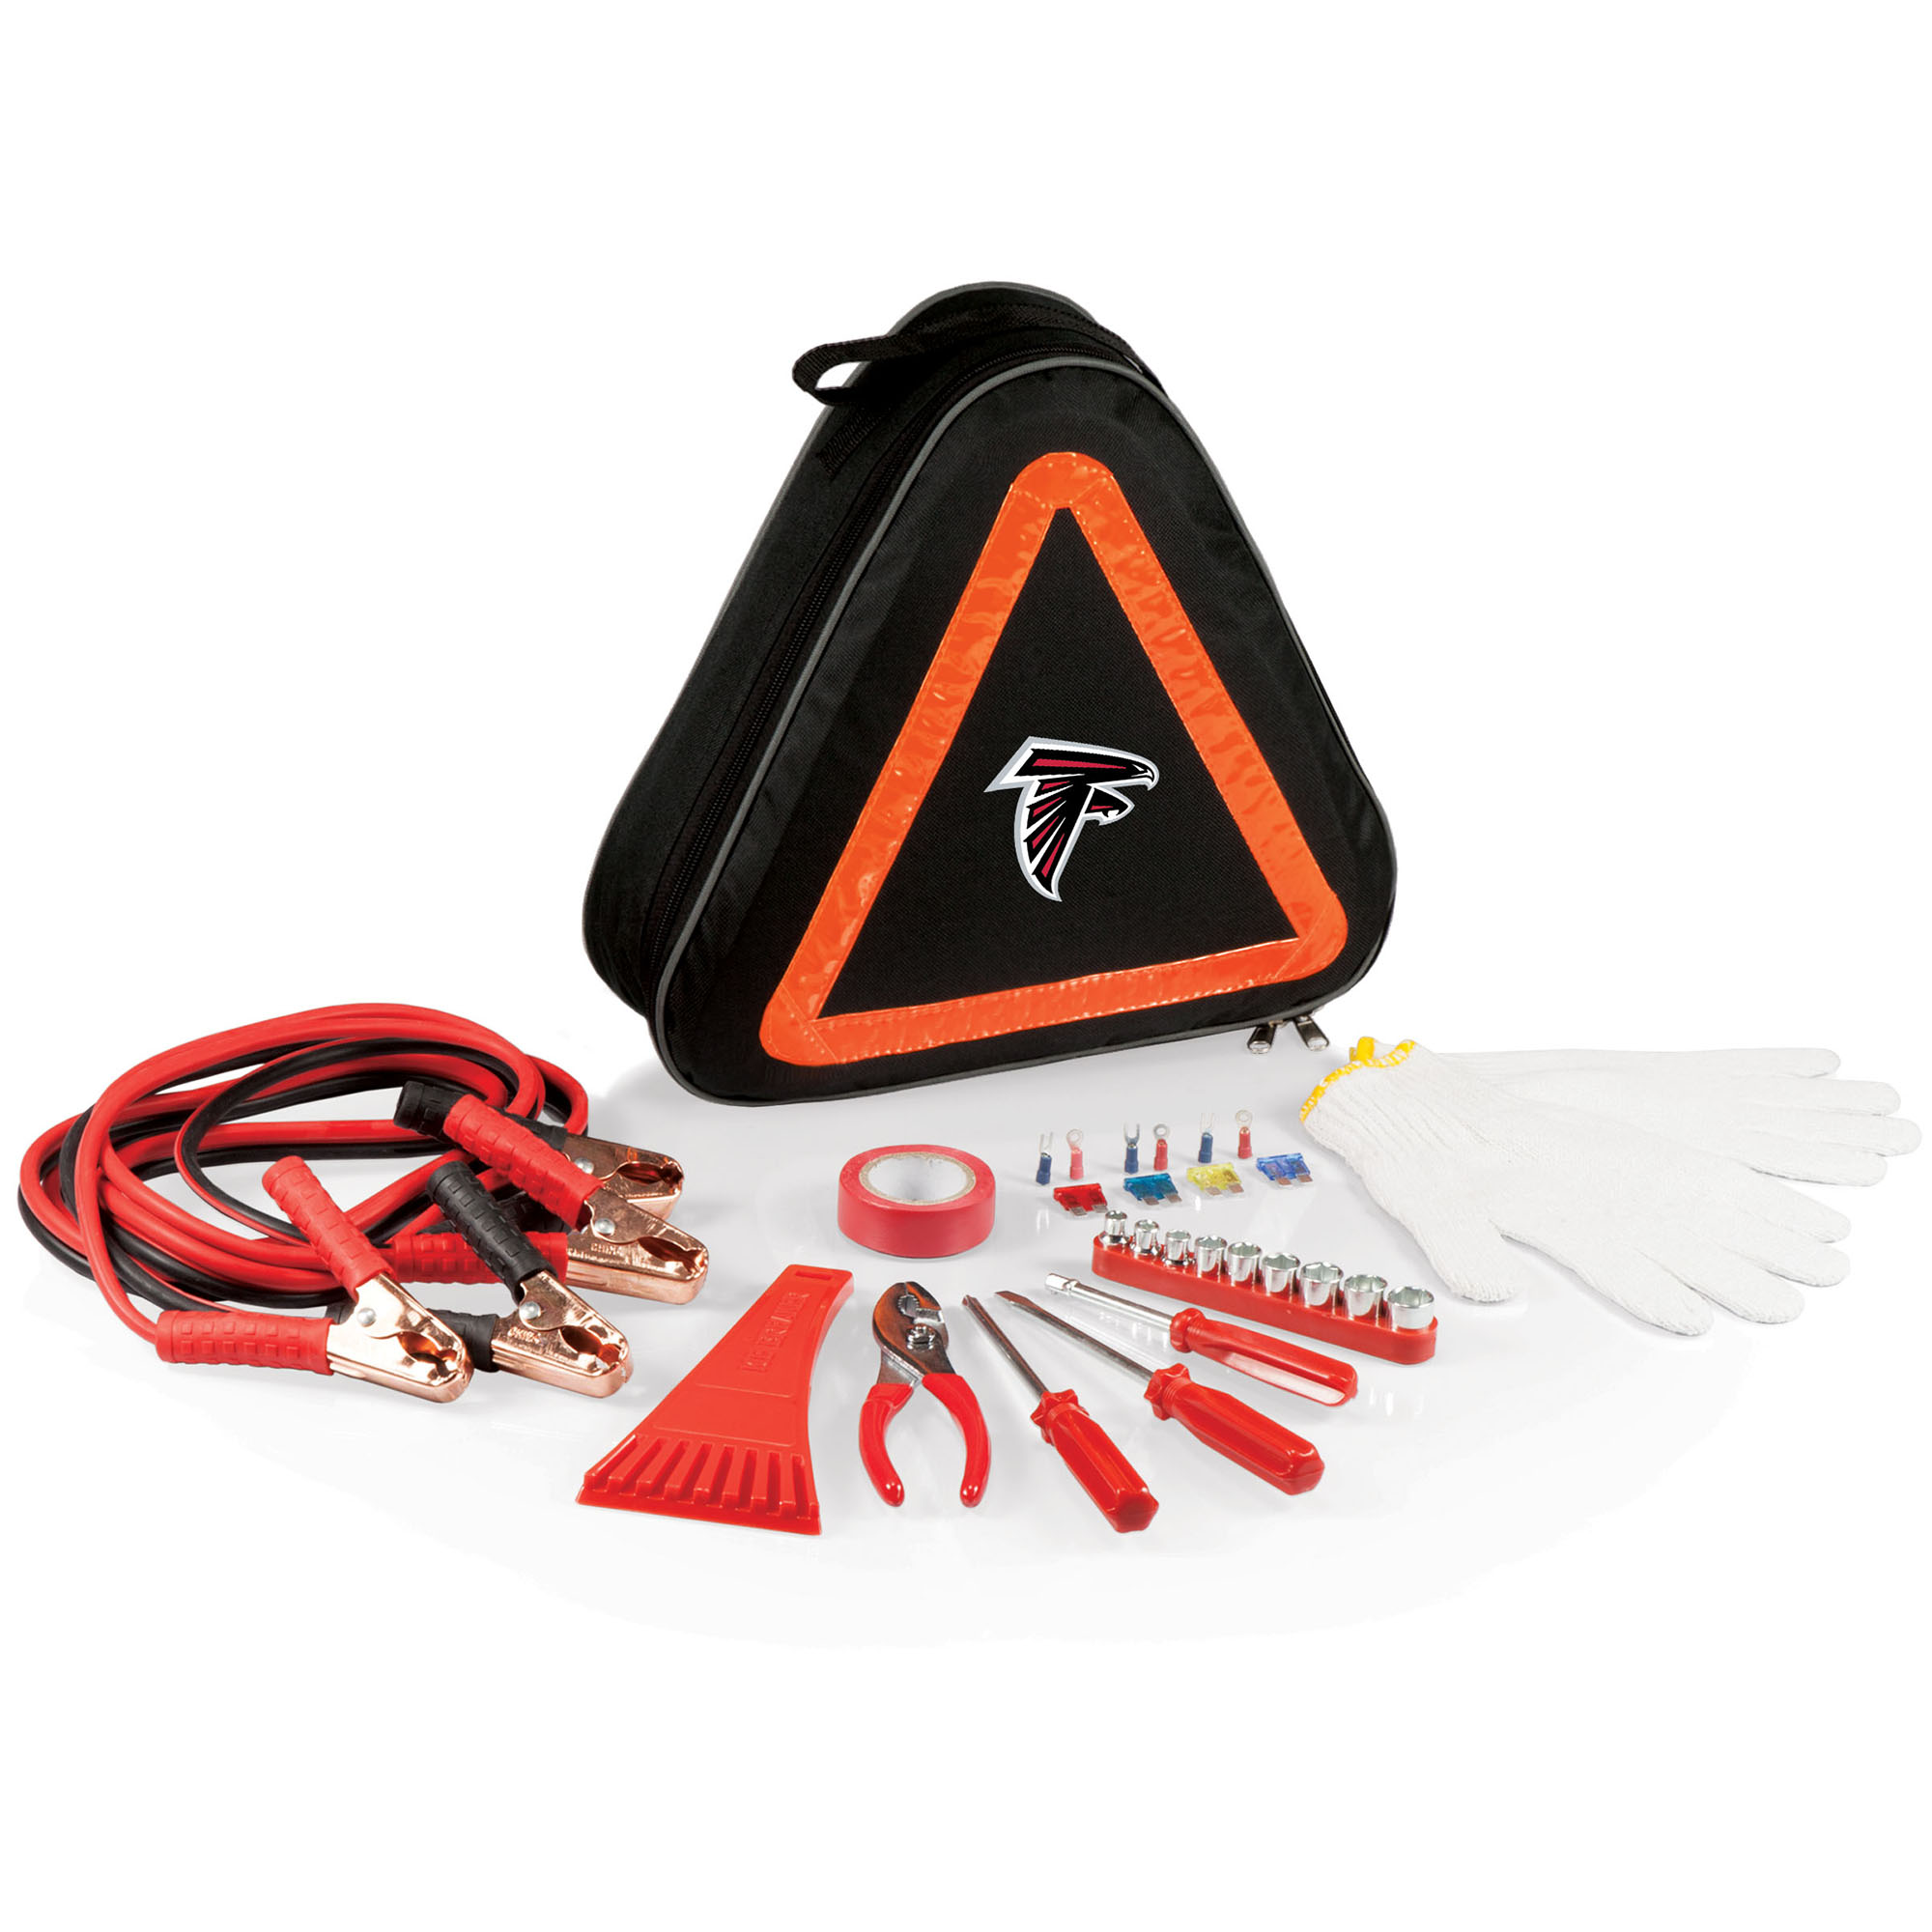 Atlanta Falcons Roadside Emergency Kit - No Size